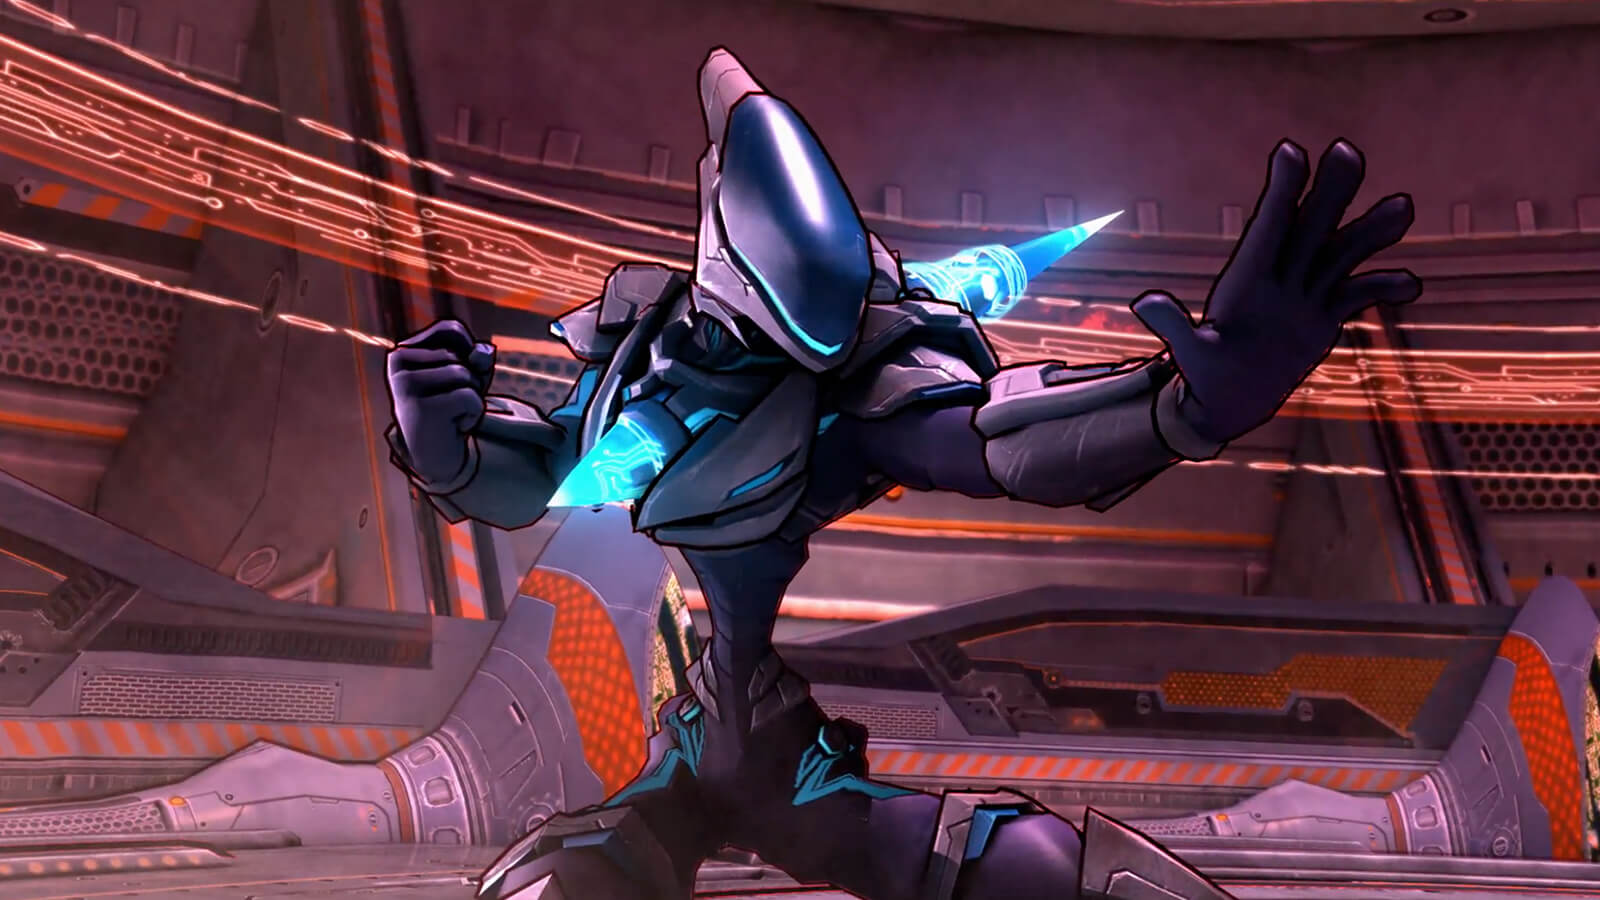 A blue and purple robot with glowing blue cones coming out of its chest and back stands poses in an orange-tinged room